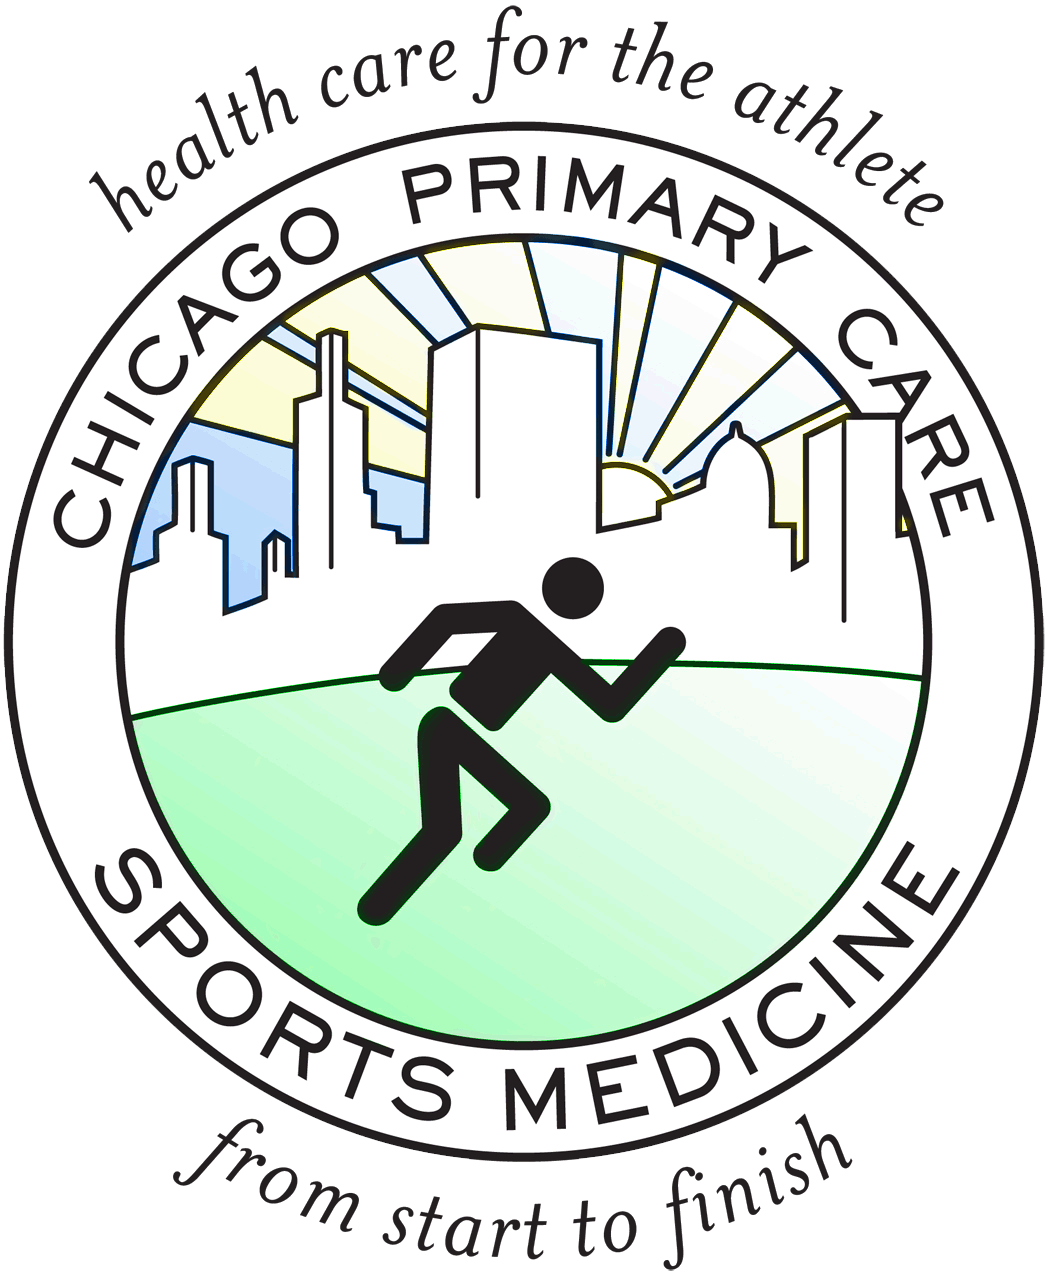 Chicago Primary Care Sports Medicine